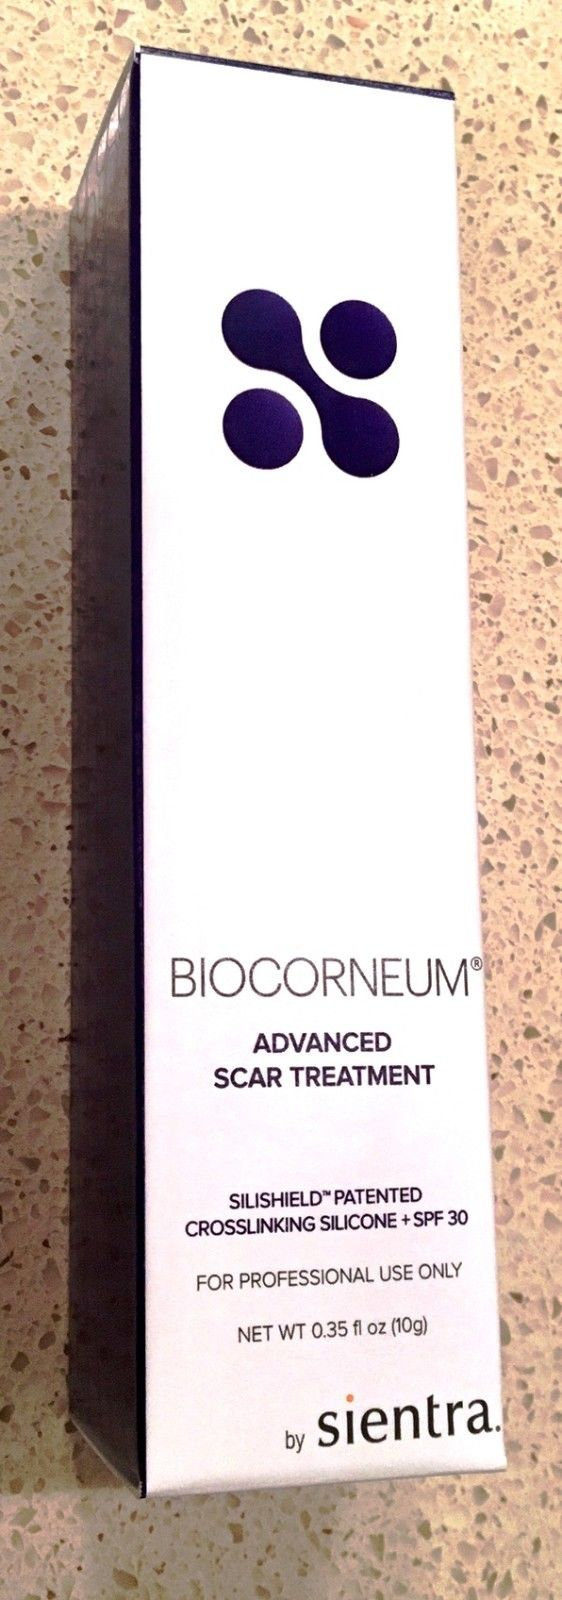 bioCorneum Advanced Scar Treatment, 10 g / 0.35 fl oz, NEW in box, EXP: 9/2020